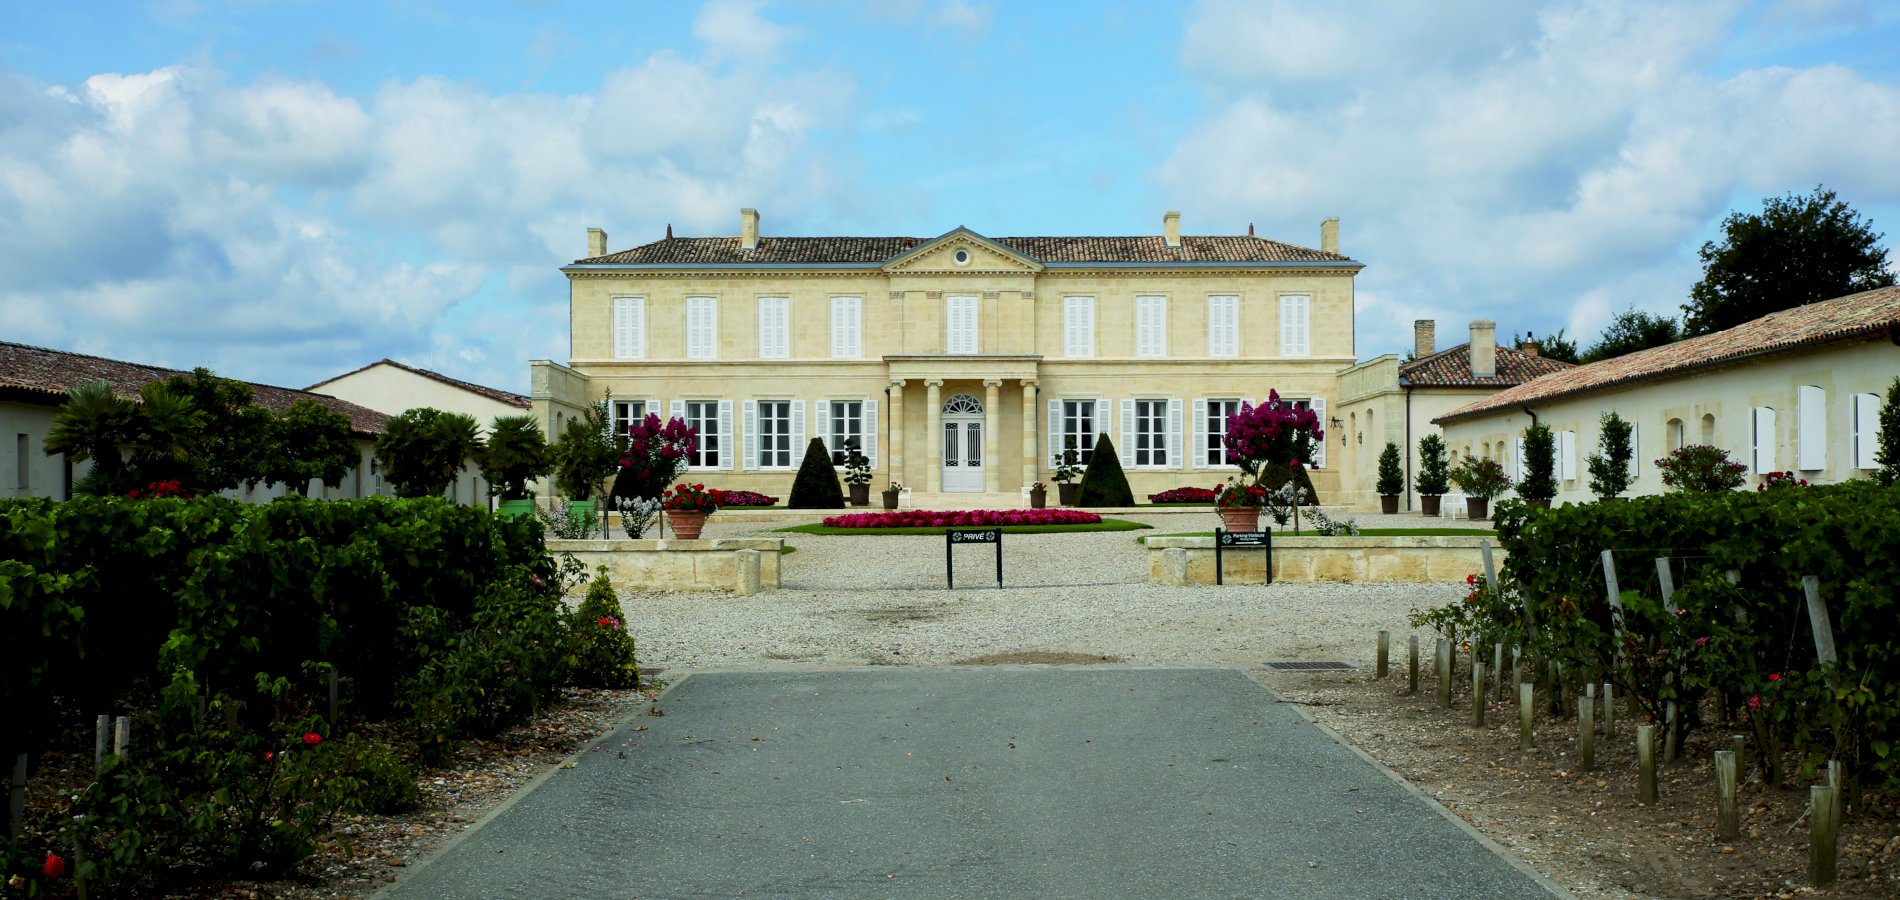 Ophorus Tours - 4 Days Bordeaux Wine Tour Private Travel Package - 4* Hotel Option